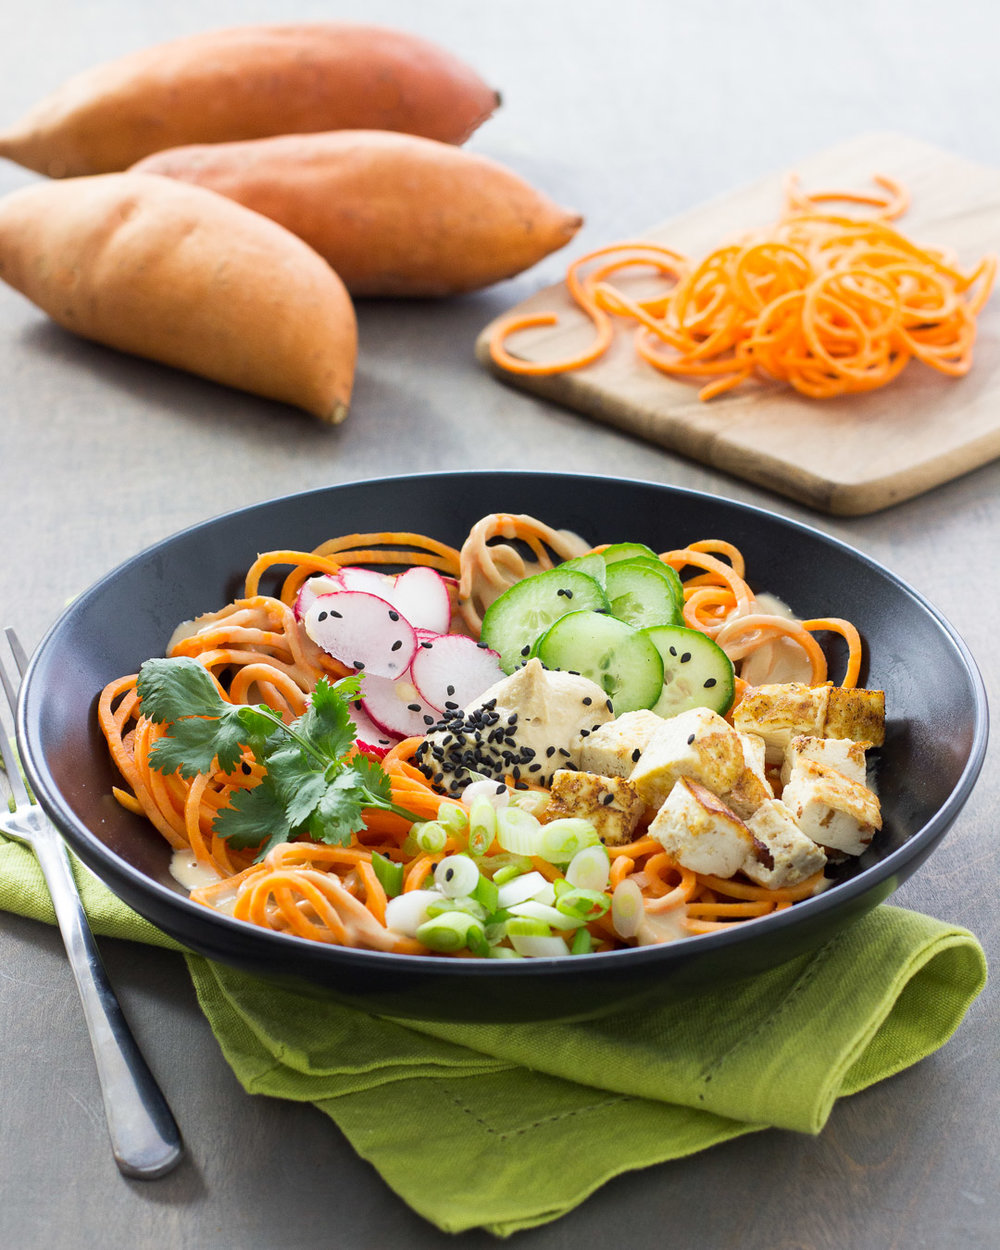 Sweetpotato and Spicy Hummus Noodle Bowl made with California Sweetpotatoes